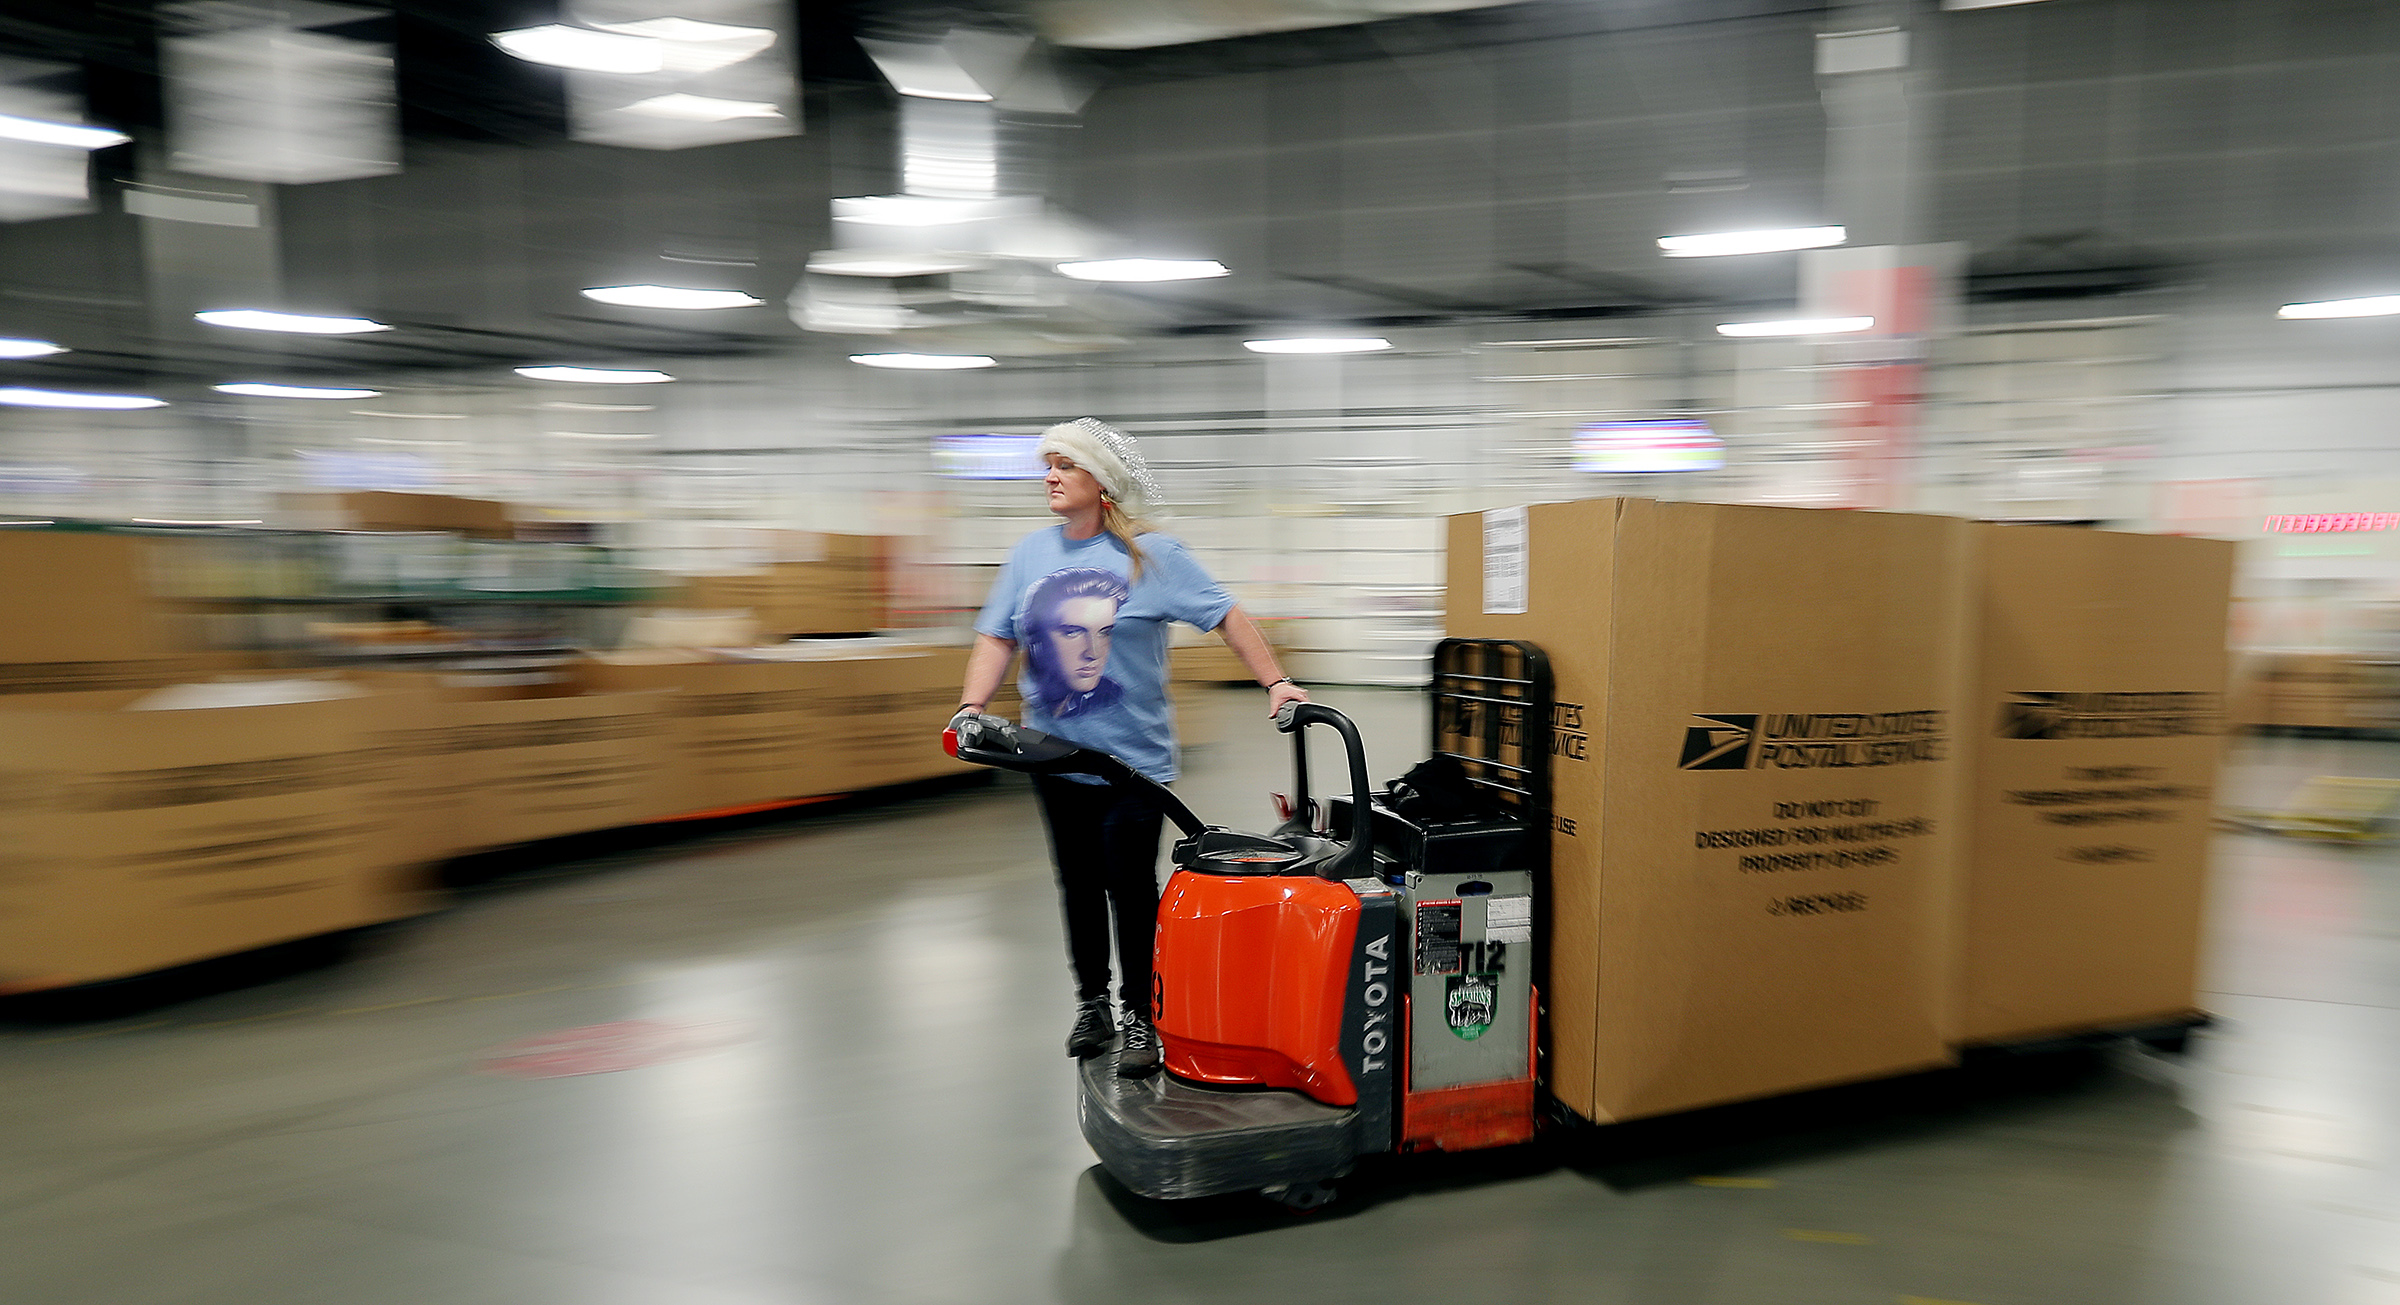 Mail handler Yvette Allgood, moves boxes of mail as United States Postal Service workers sort mail at a processing facility in Salt Lake City on Wednesday, Dec. 11, 2019.